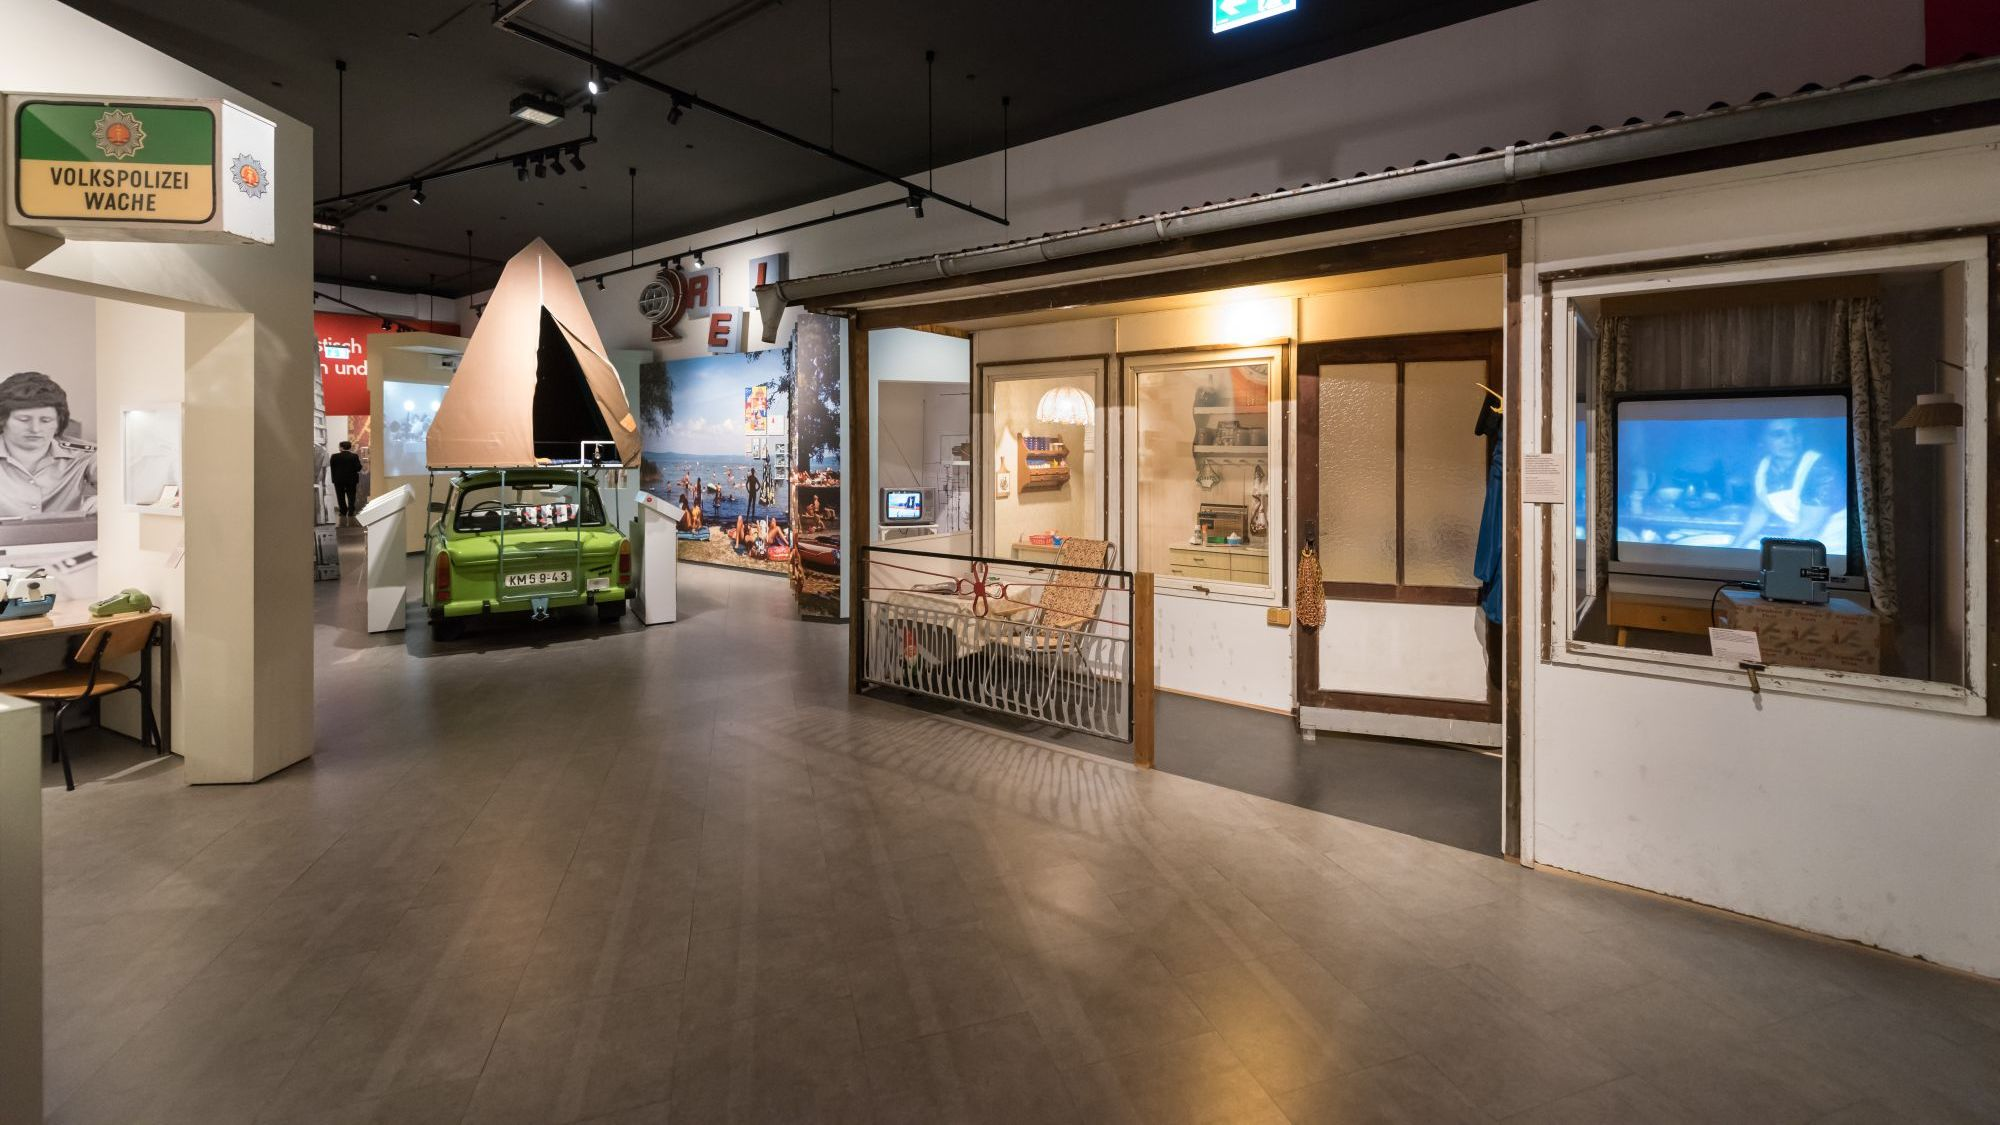 View into an exhibition room with a summer house and a Camping-Trabi